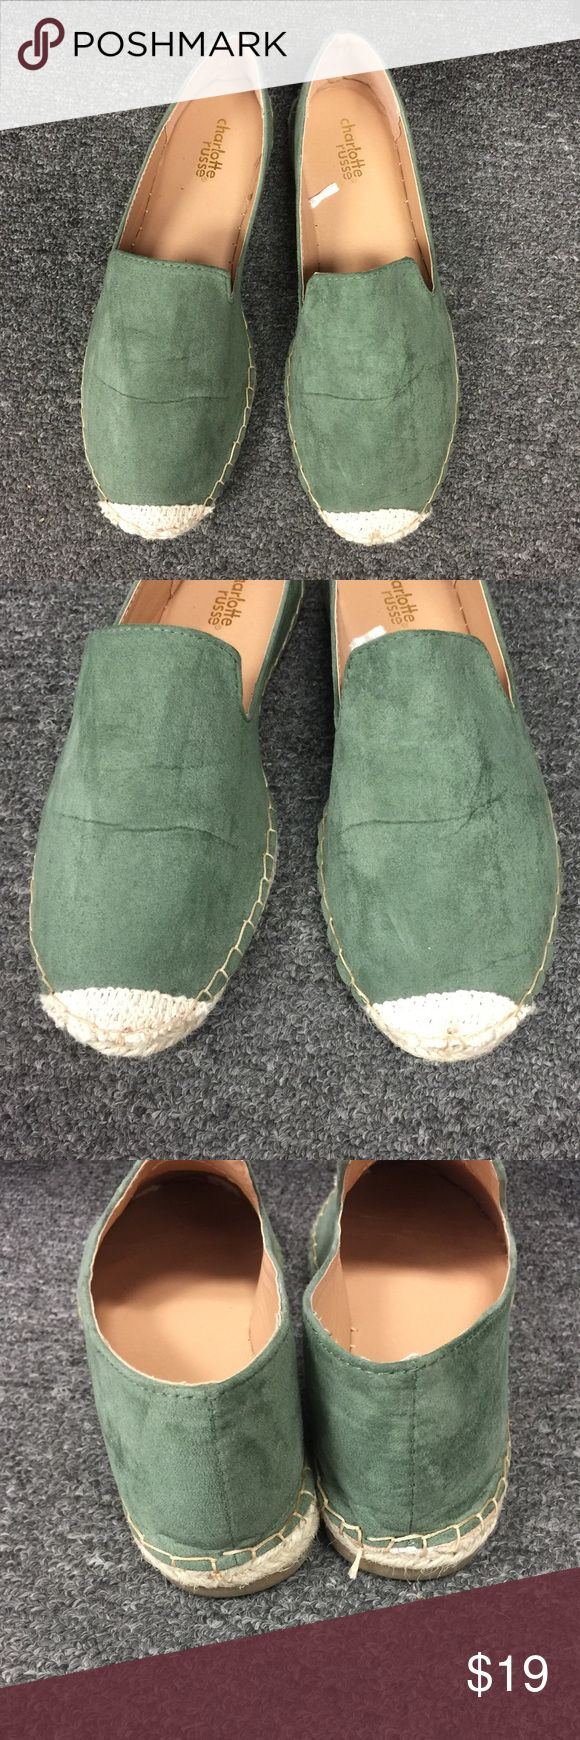 New in a Bag Pine Green Espadrilles Flats New Have many sizes come in a bag I love with this color very comfy you can wear with a dress or with some jeans very comfy flats                 ----Check out more styles----                             Many Sizes available Charlotte Russe Shoes Flats & Loafers